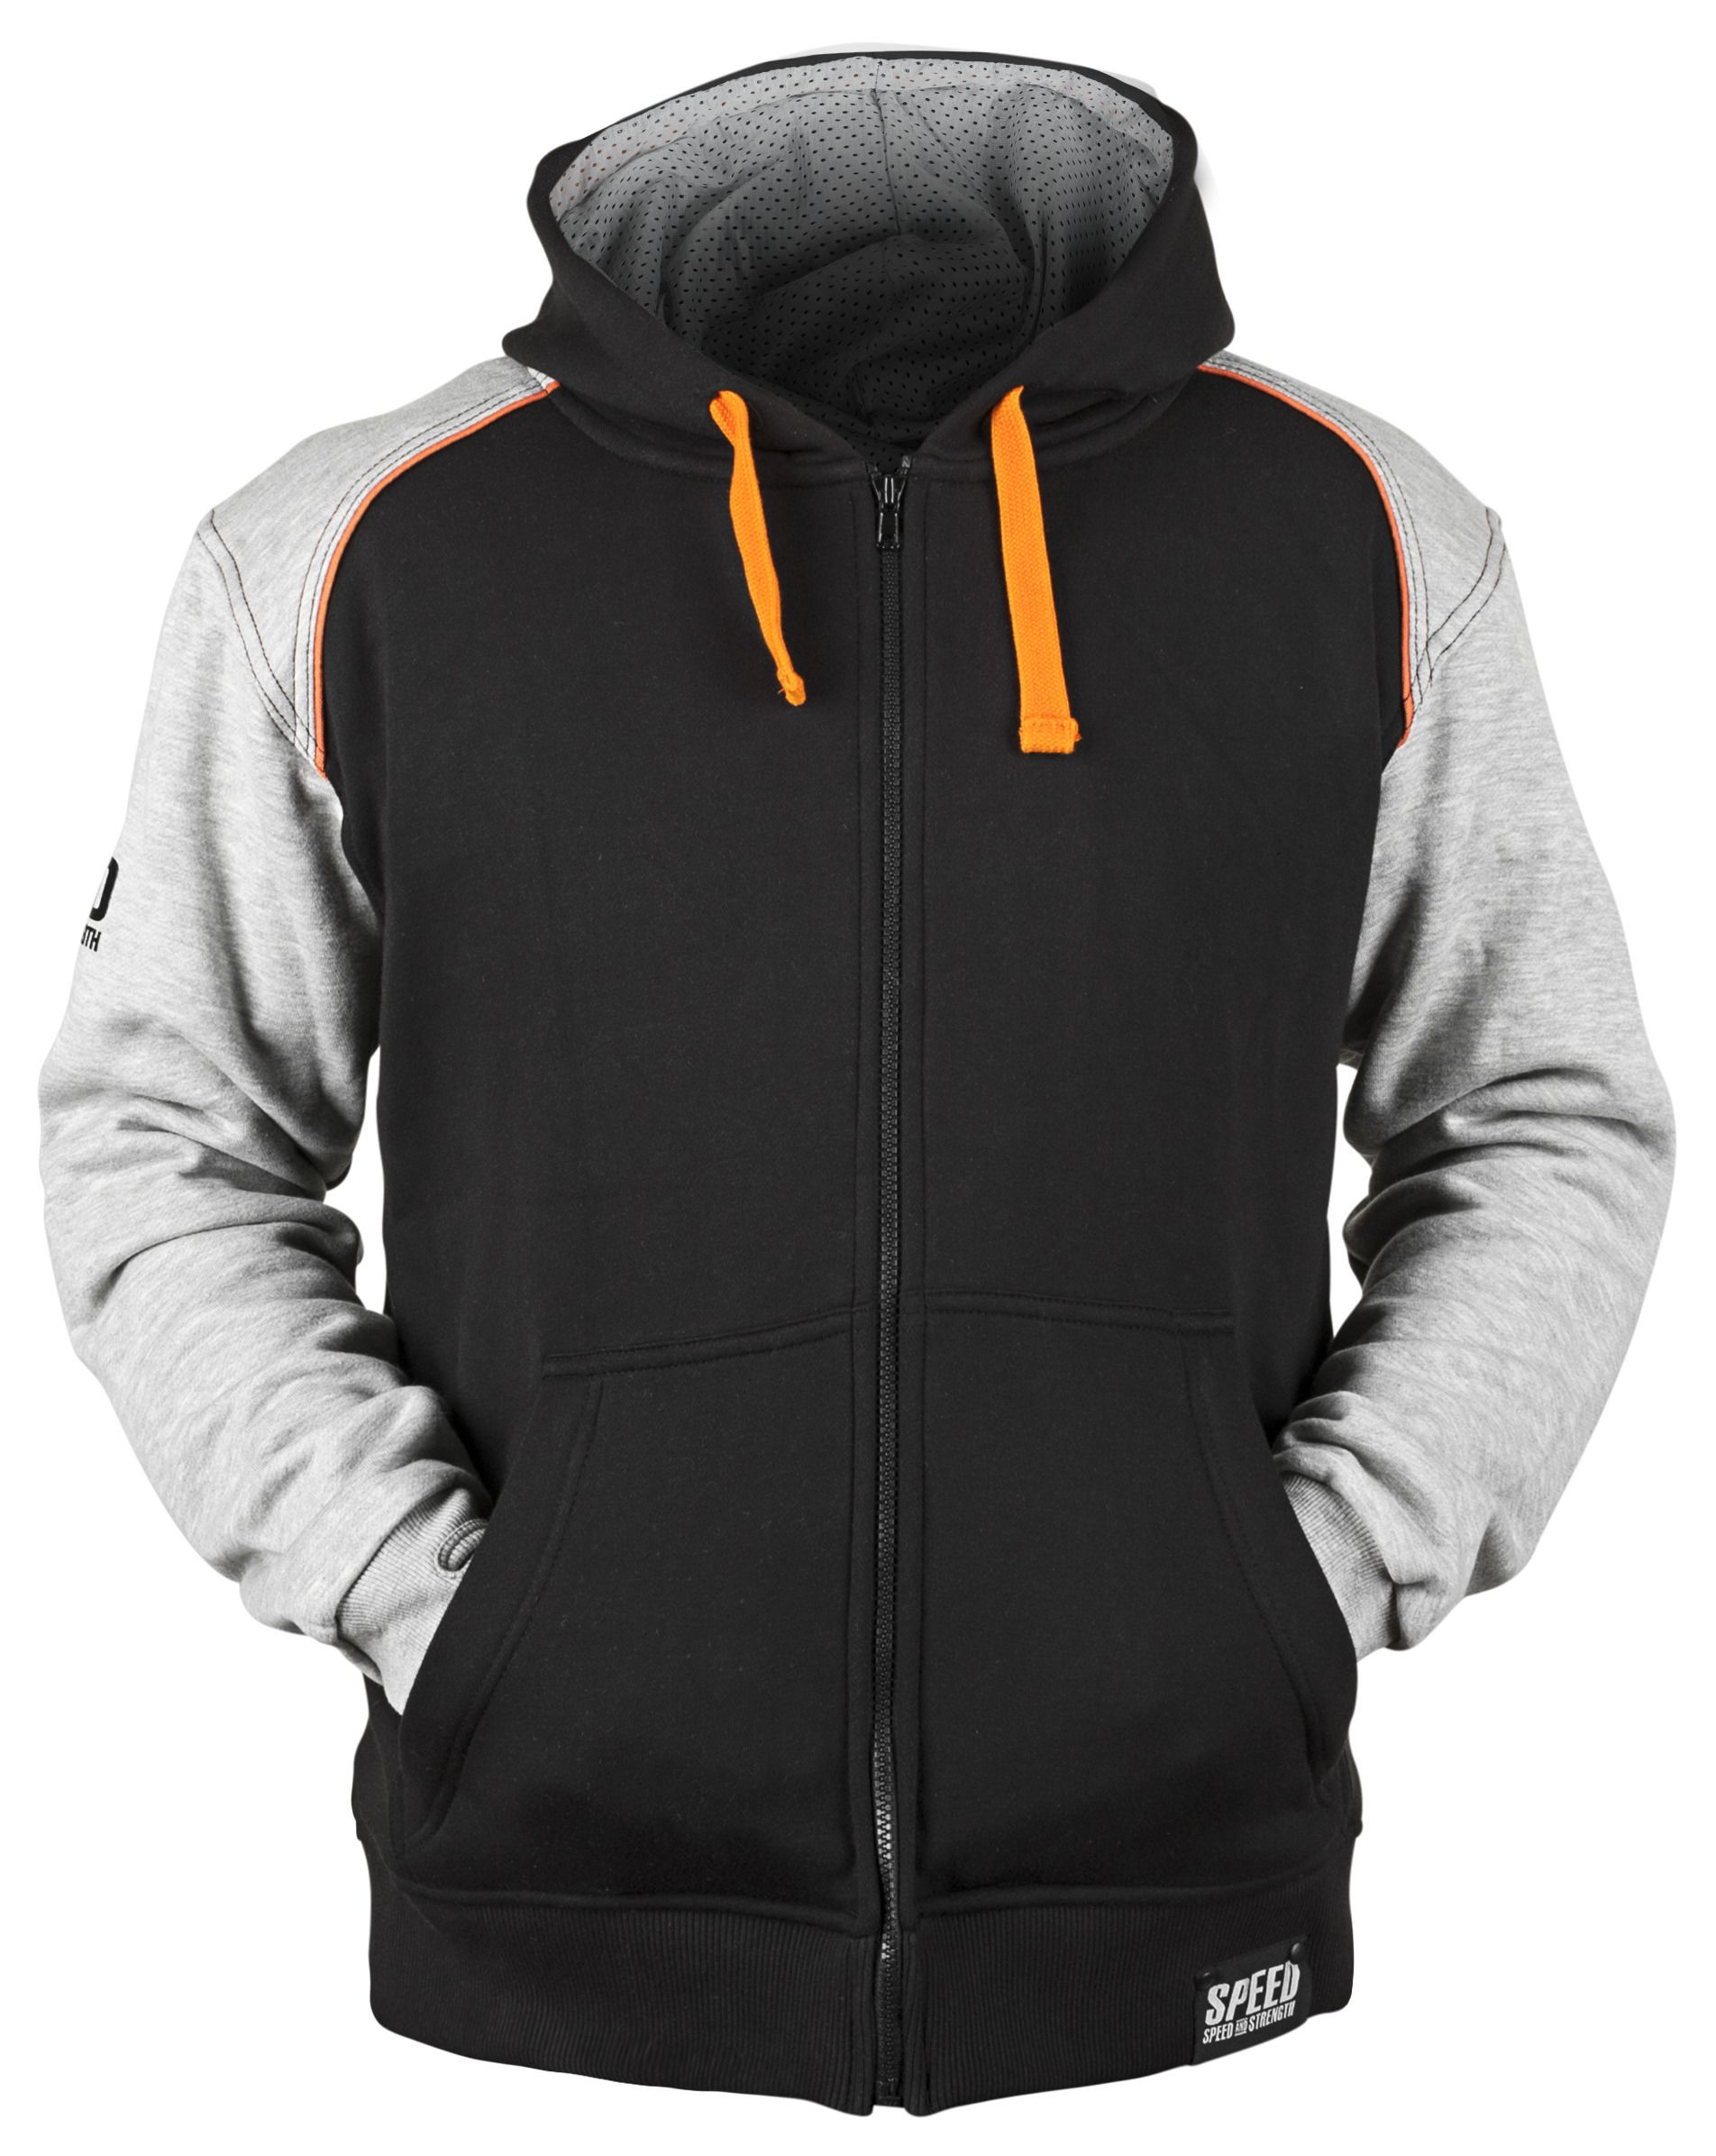 Speed And Strength Cruise Missile Armored Hoody Revzilla